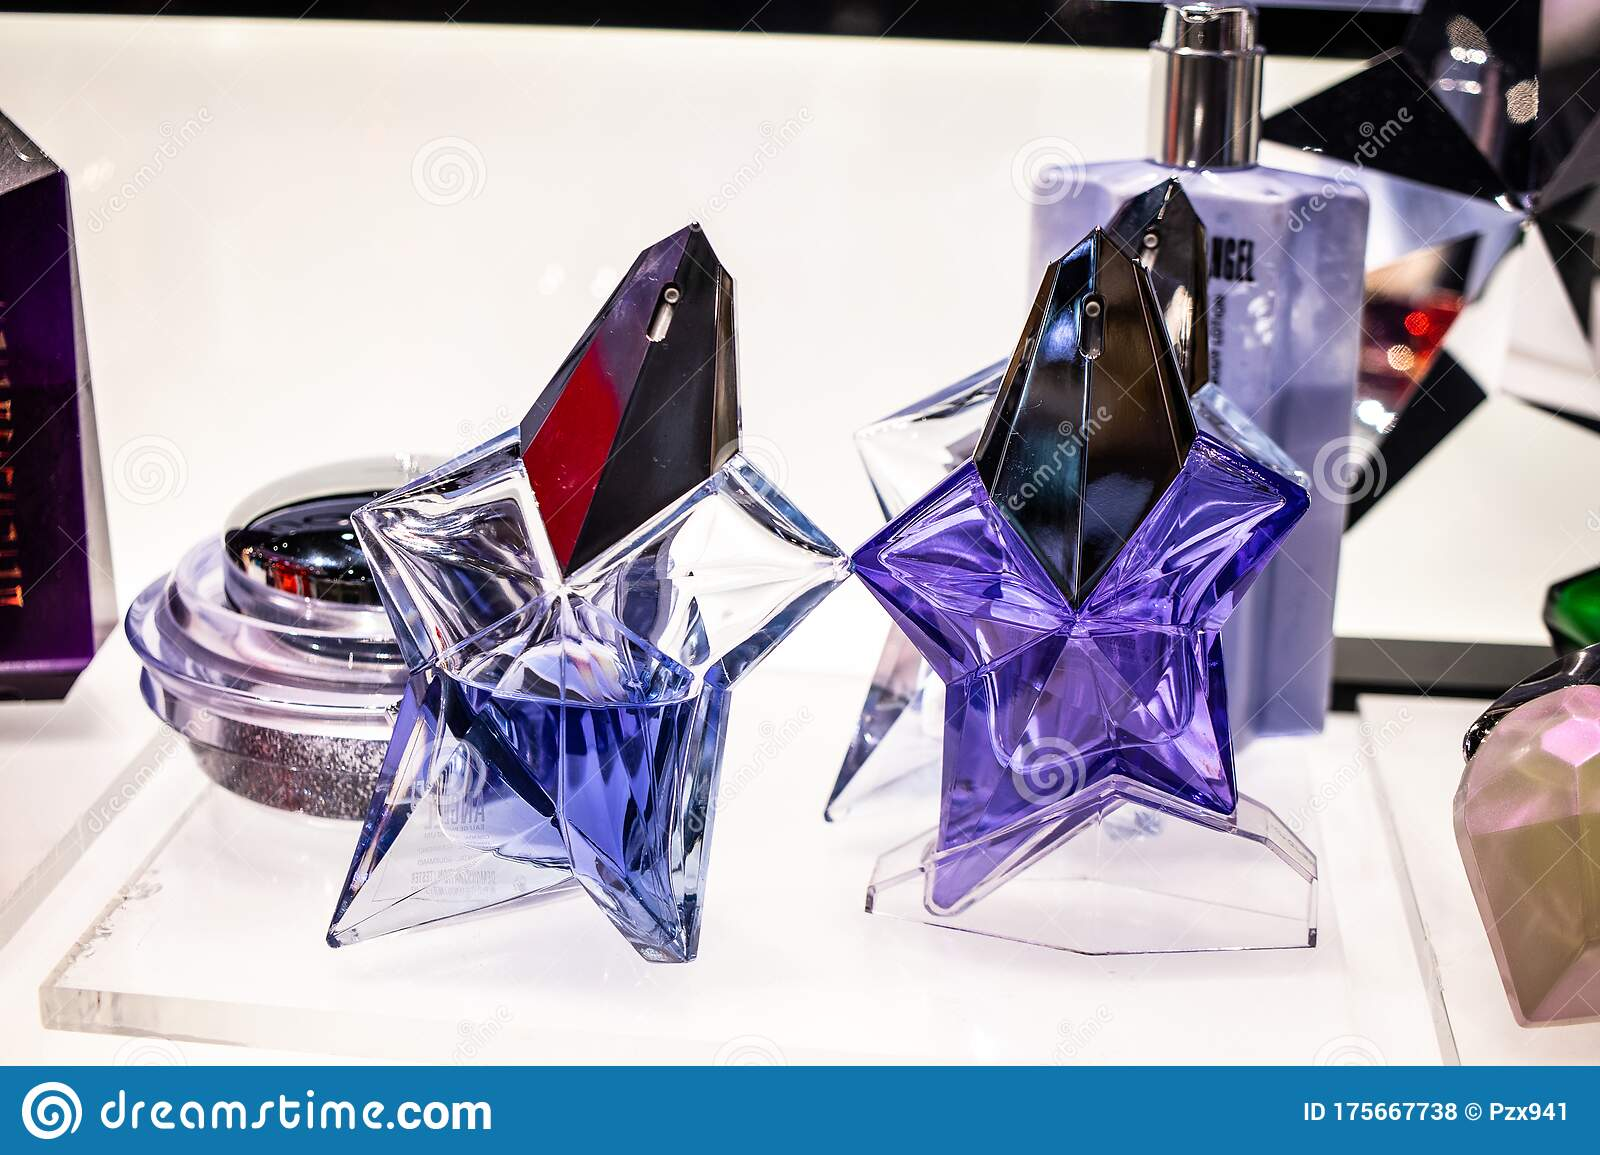 Thierry Mugler Perfume On The Shop Display For Sale Fragrance Created By Thierry Mugler French Fashion Designer Editorial Stock Photo Image Of Display Aroma 175667738